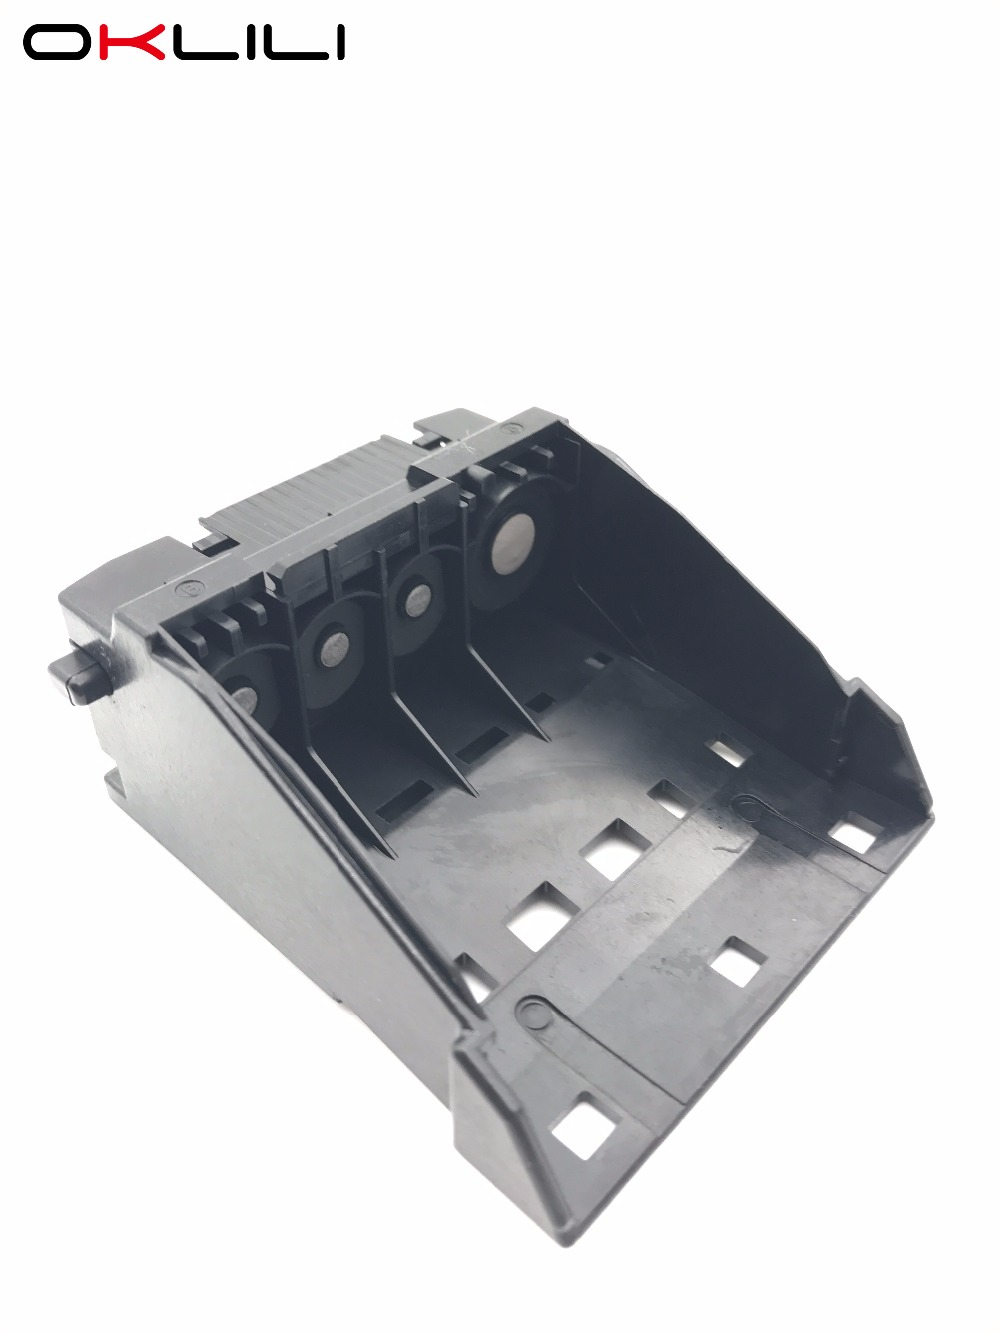 OKLILI QY6-0064 Printhead Print Head Printer for Canon 560i 850i MP700 MP710 MP730 MP740 i560 i850 iP3100 iP300 iX4000 iX5000 цена